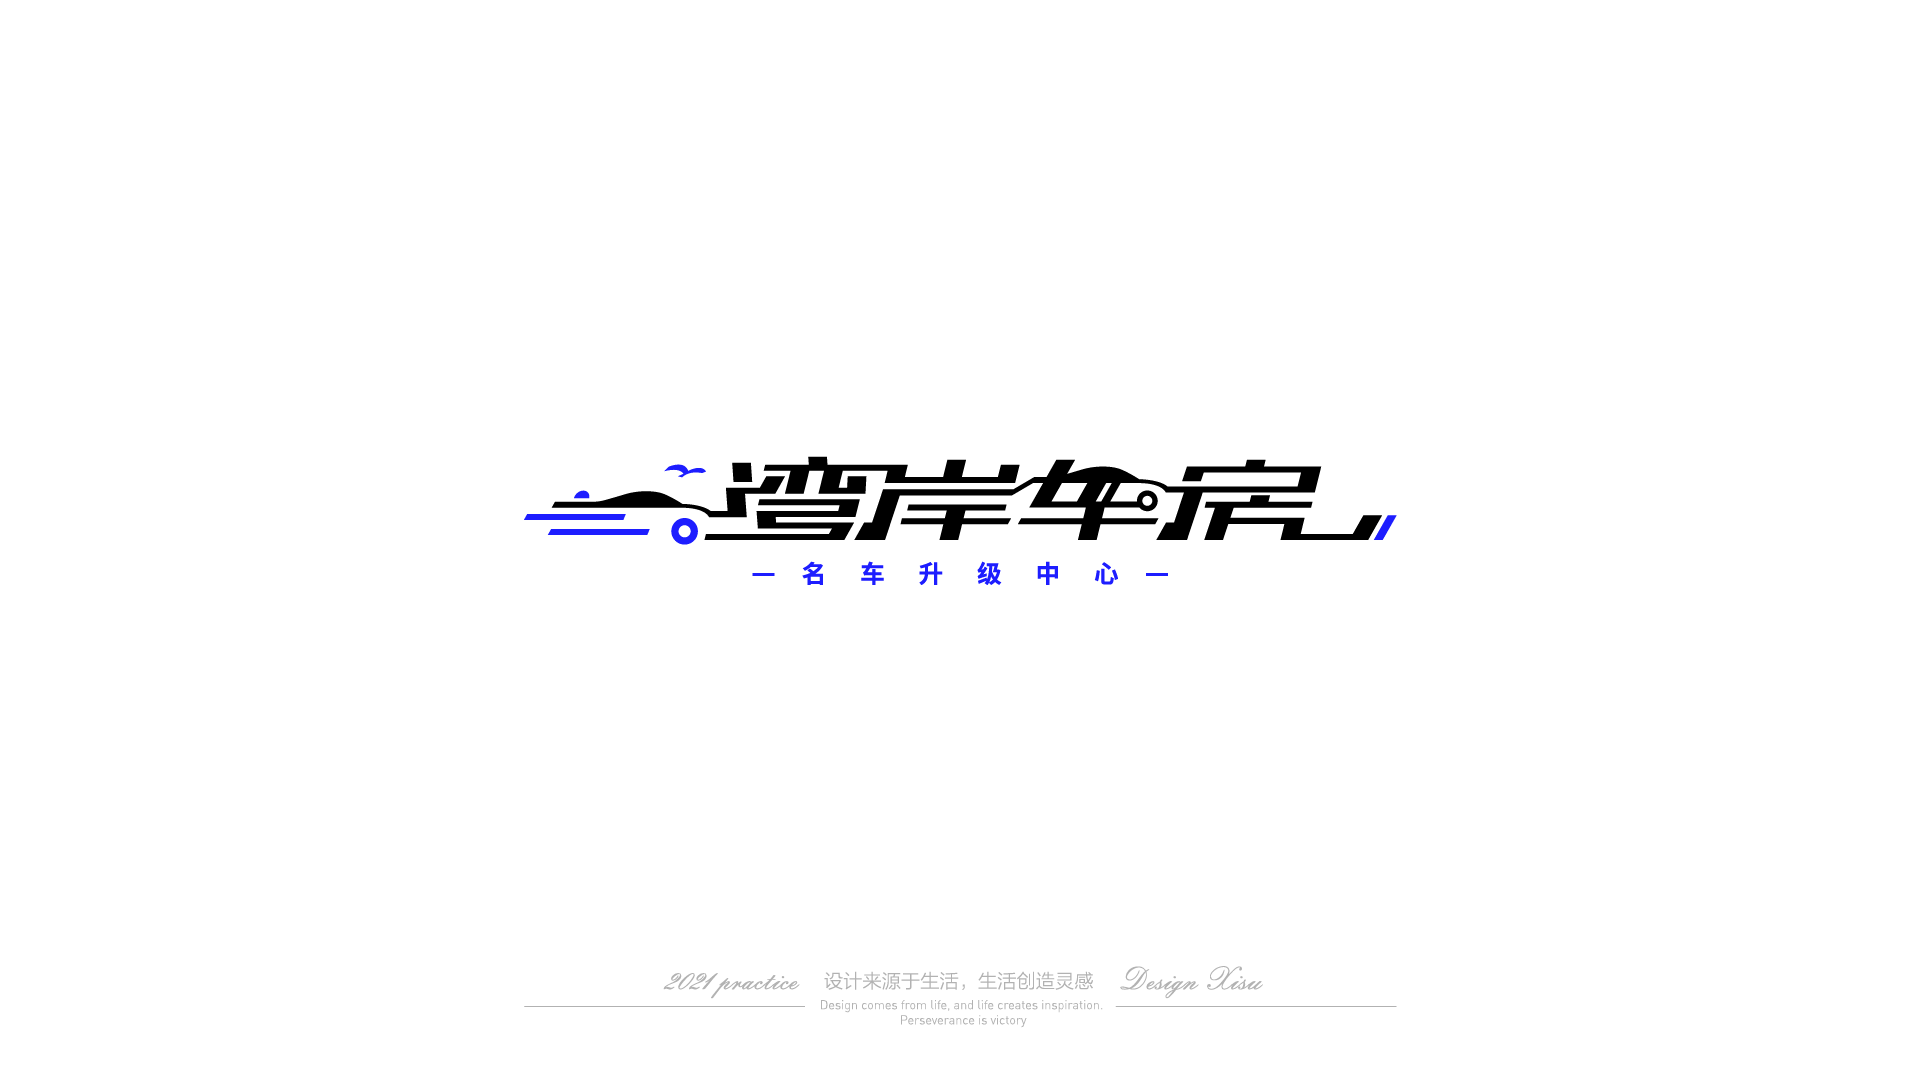 20P Collection of the latest Chinese font design schemes in 2021 #.587